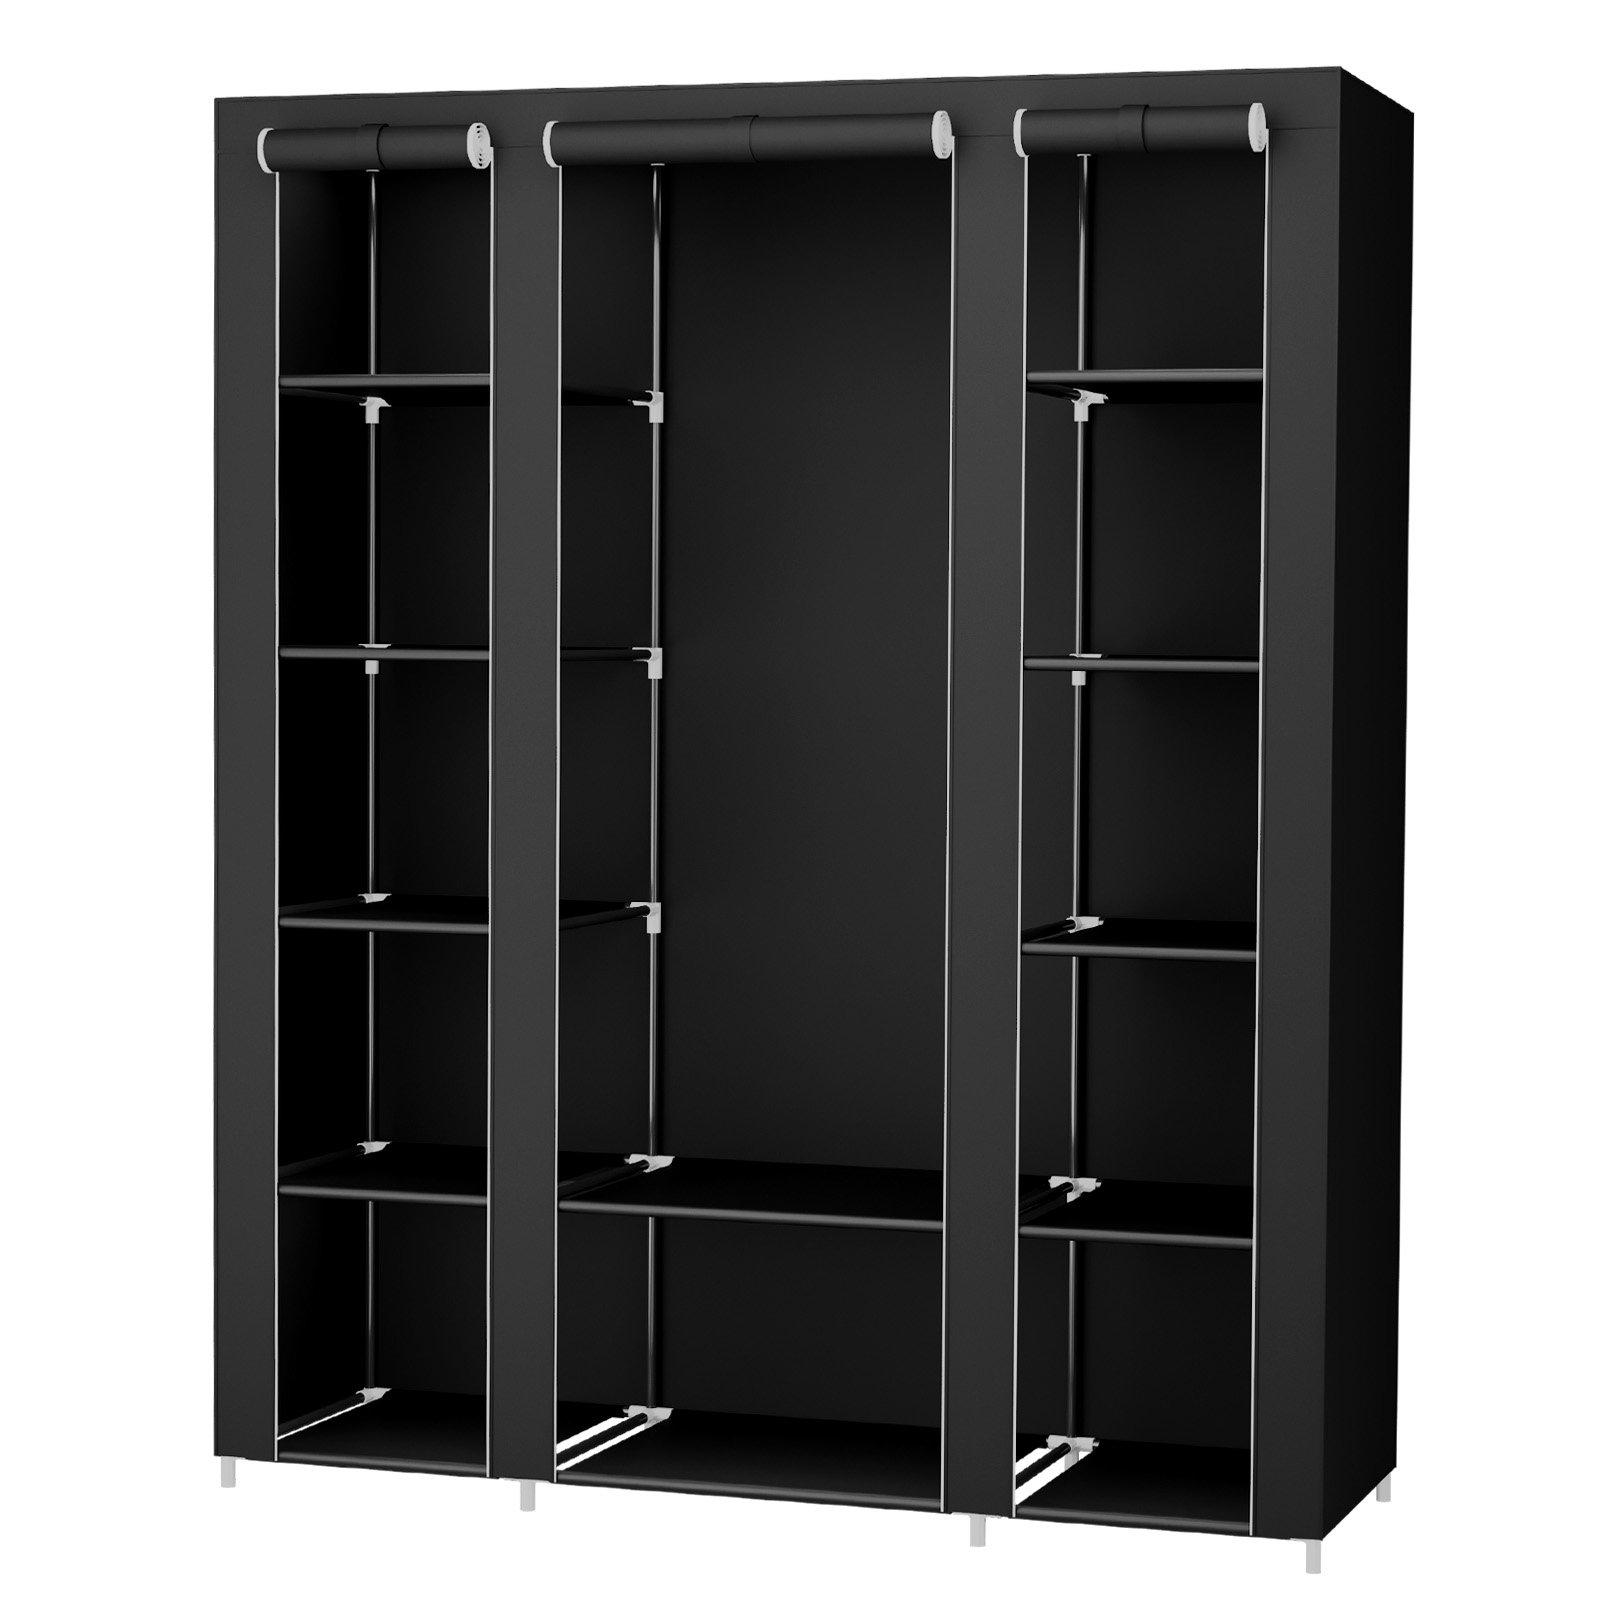 SONGMICS 59'' Portable Clothes Closet Wardrobe Storage Organizer with Non-Woven Fabric, Quick and Easy to Assemble, Extra Strong and Durable, Black ULSF03H